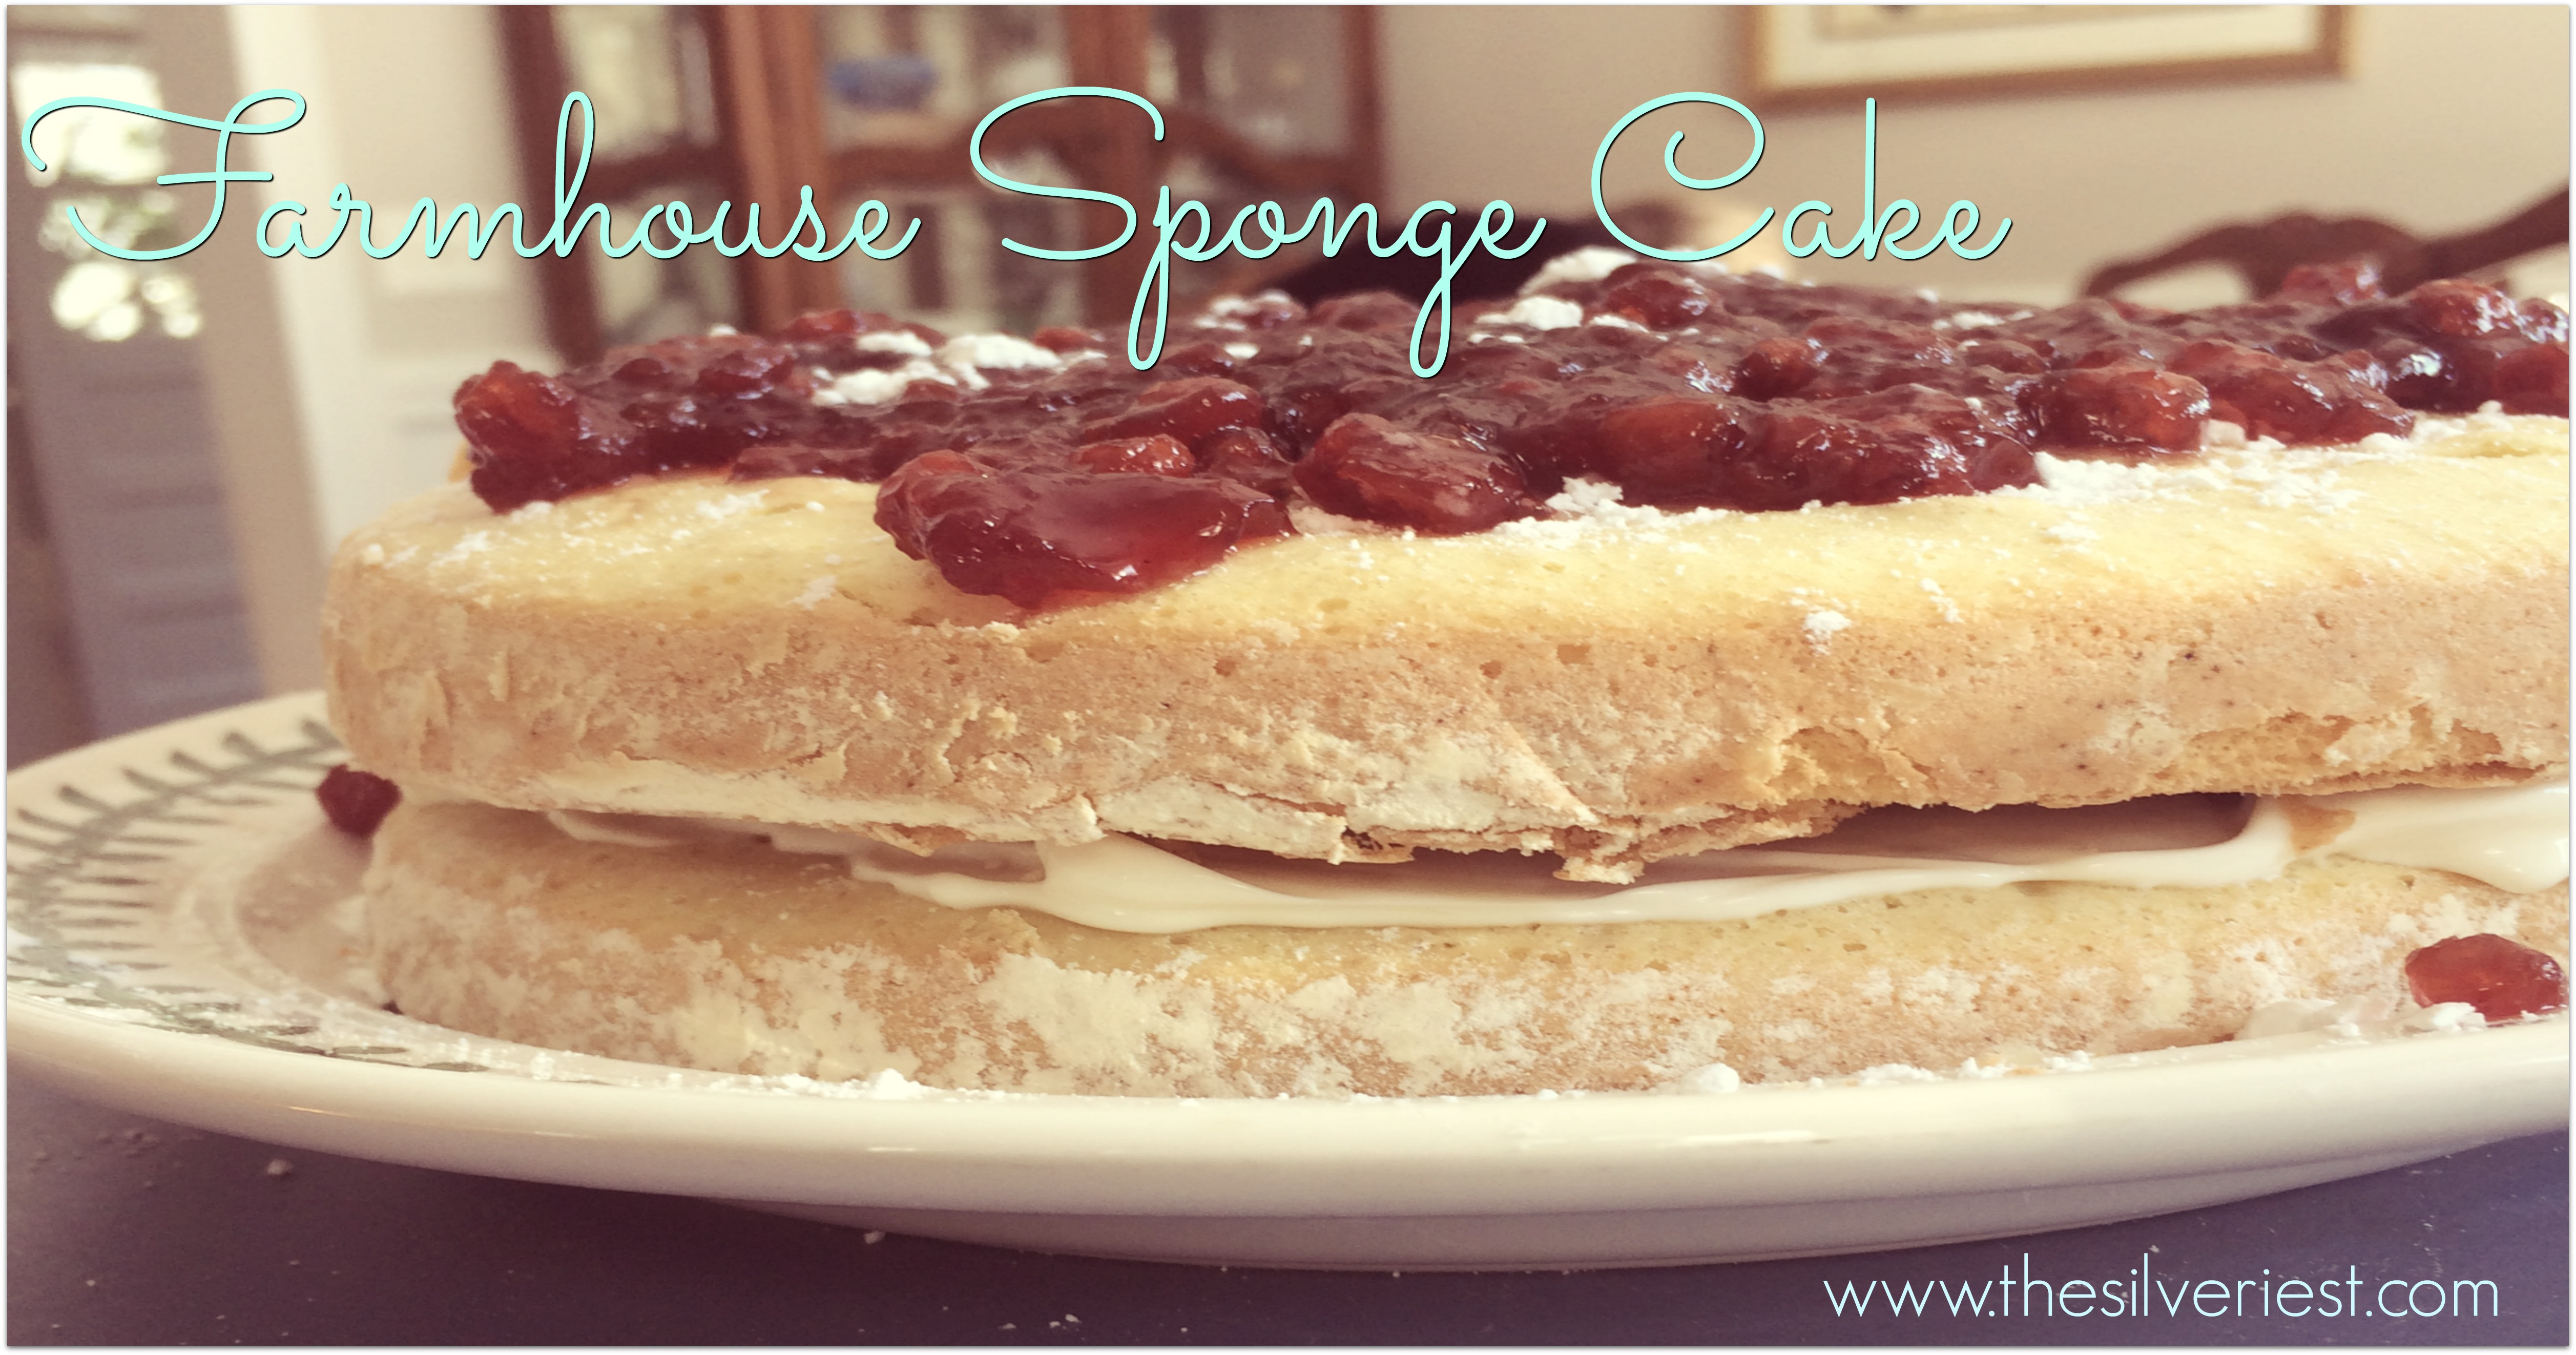 Cake used to be a rare event at our home. This recipe for a simple, delicious, fat-free, light and fluffy Farmhouse Sponge Cake changed everything! www.thesilveriest.com